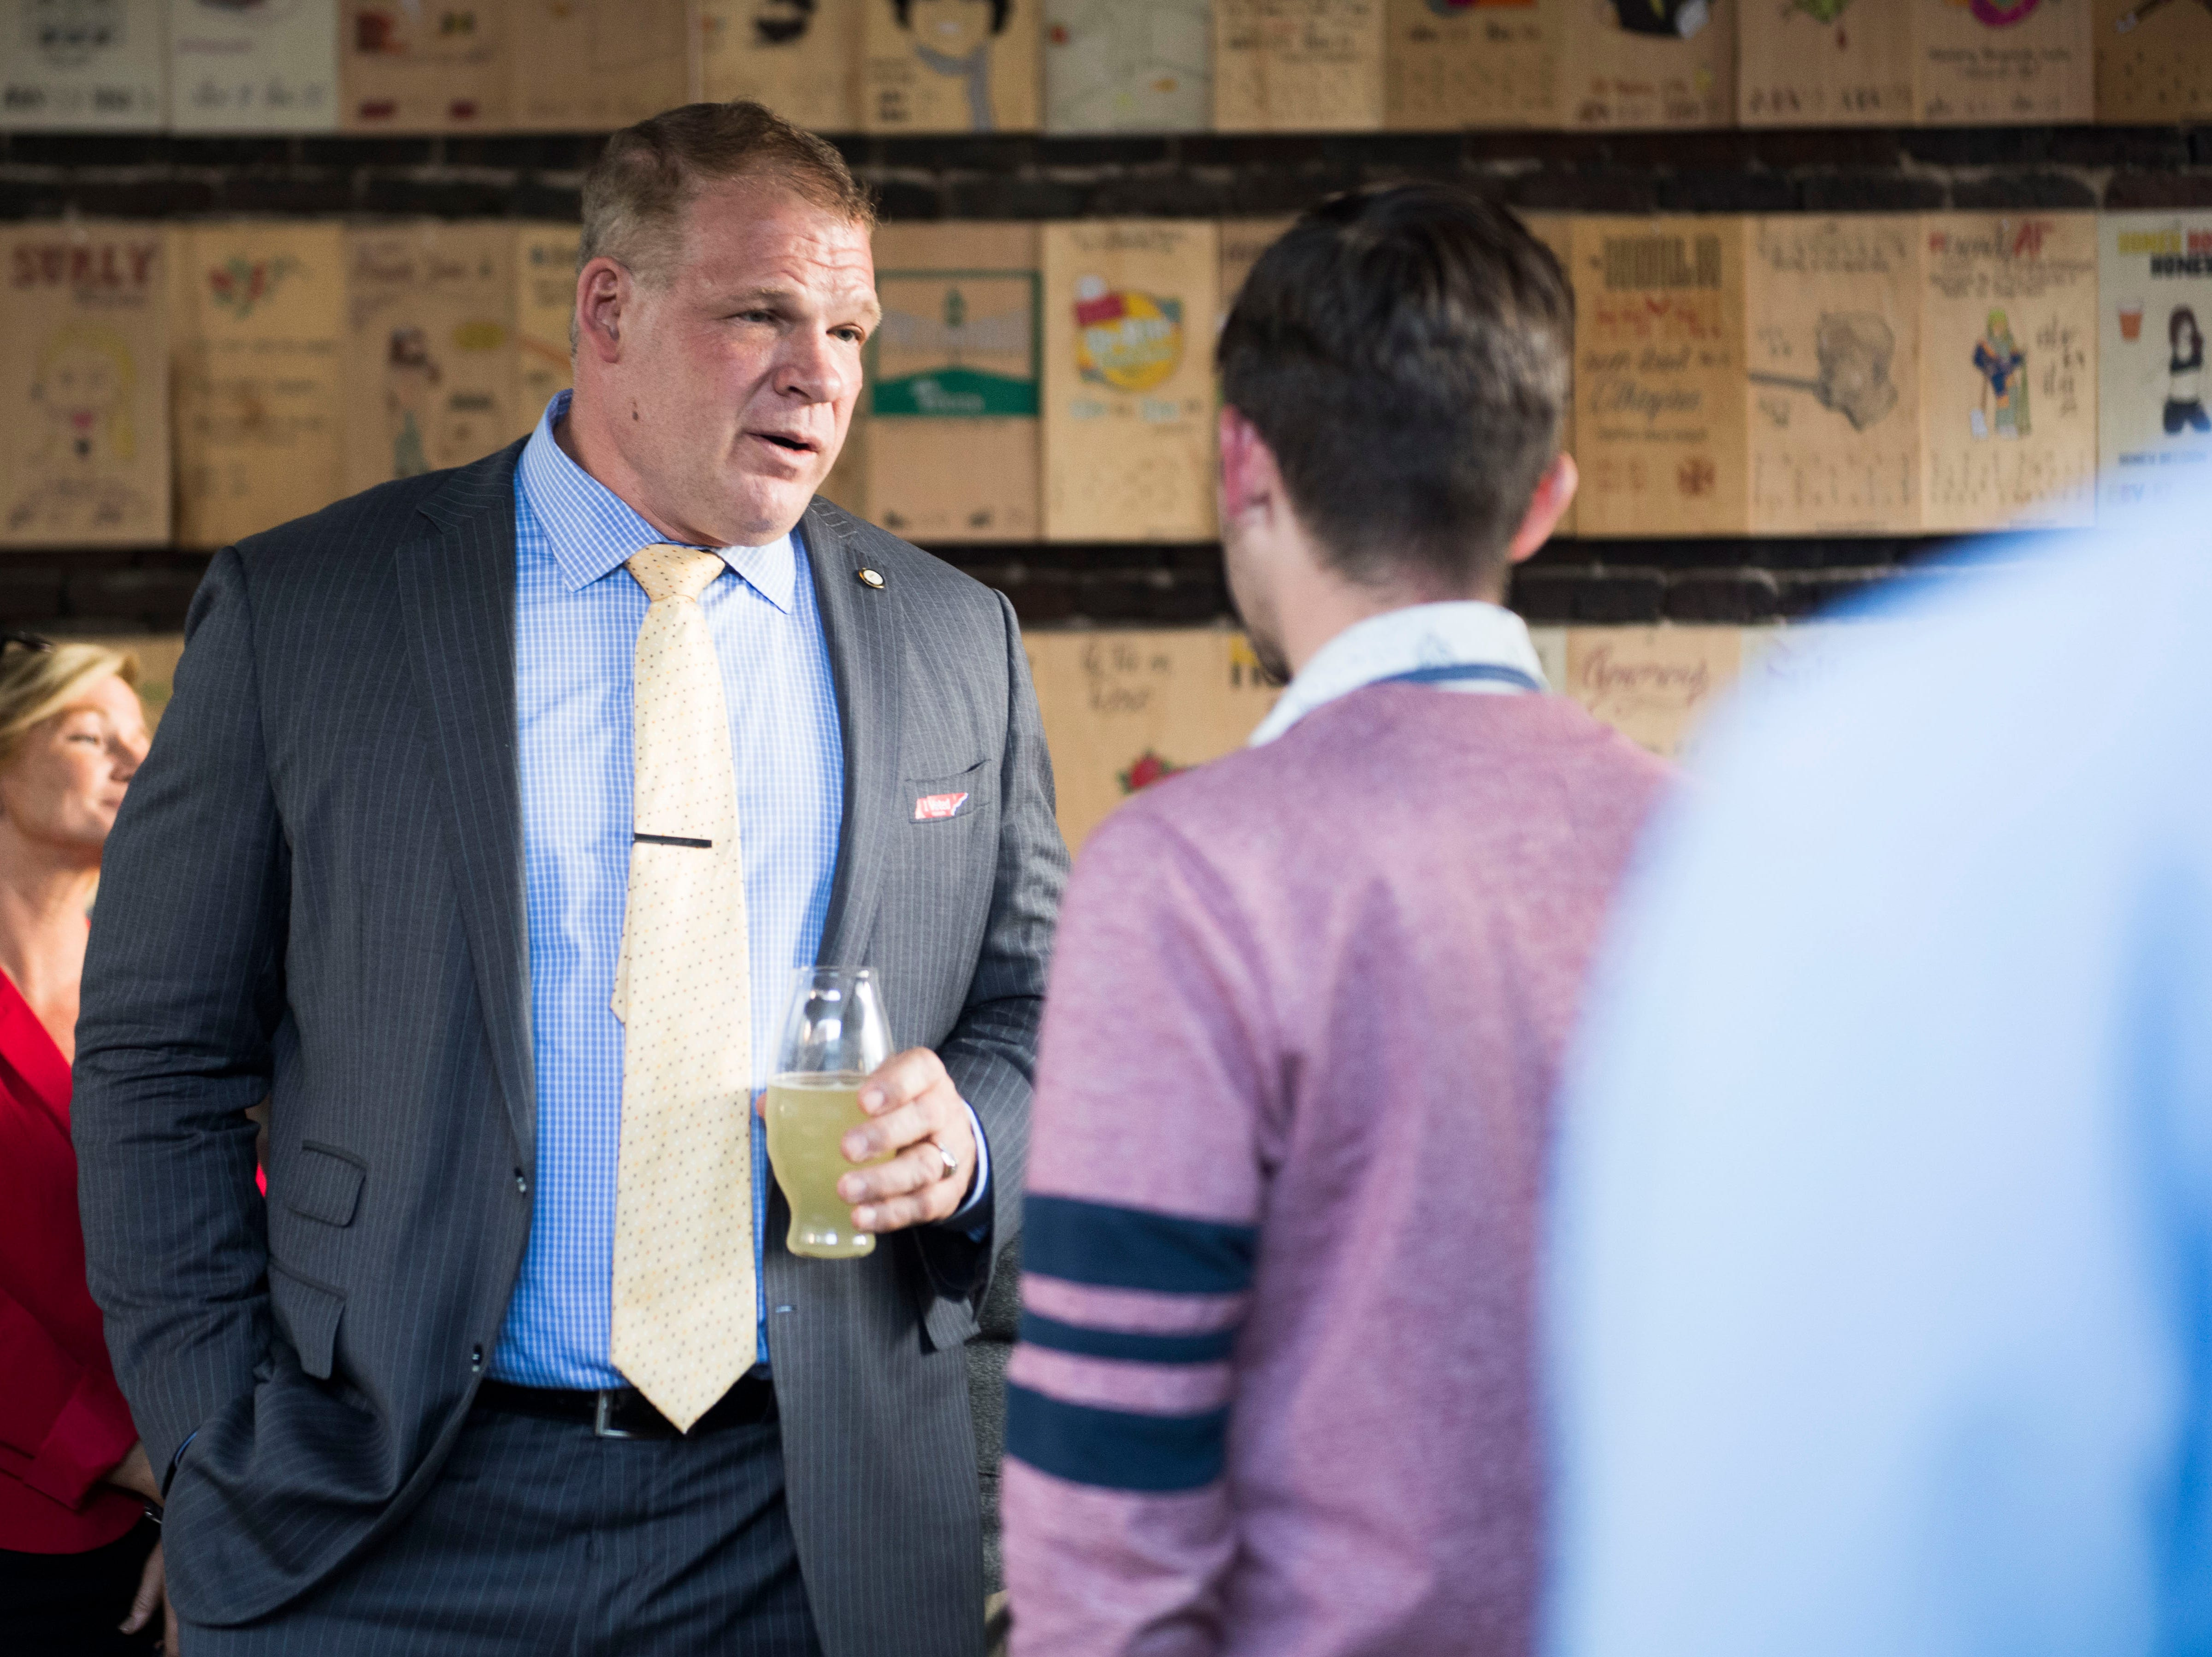 Knox County Mayor Glenn Jacobs speaks with an attendee at the News Sentinel's second News & Brews event at Pretentious Beer Co. on Oct. 18, 2018.